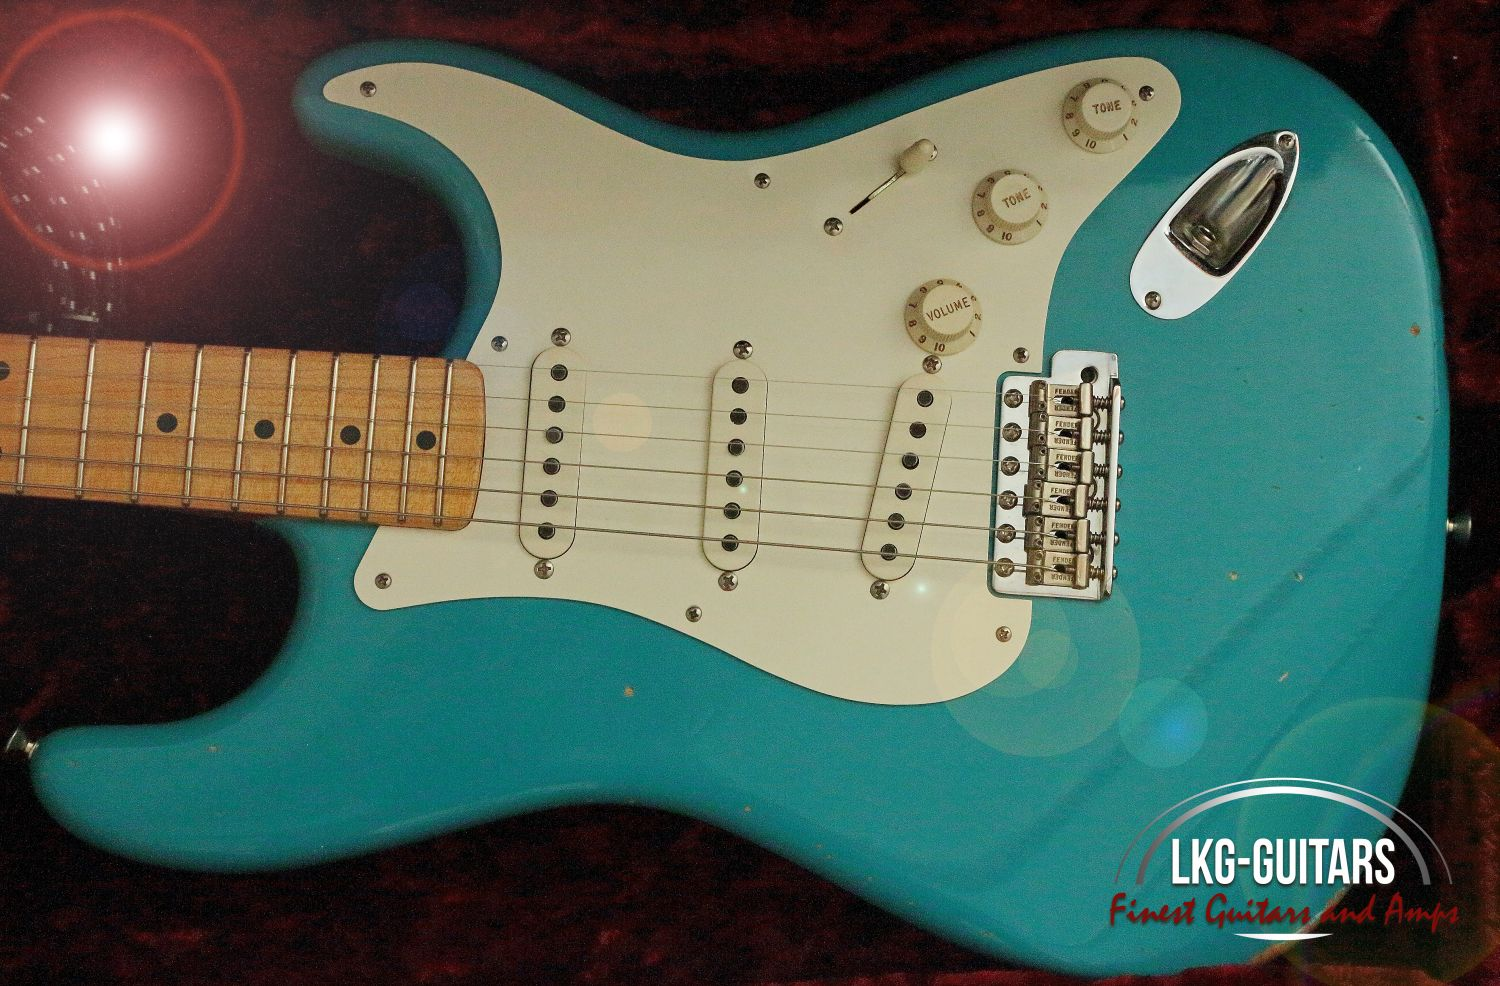 Fender Custom Shop 1956 Duo Tone Stratocaster Relic-Taos Turquoise ...